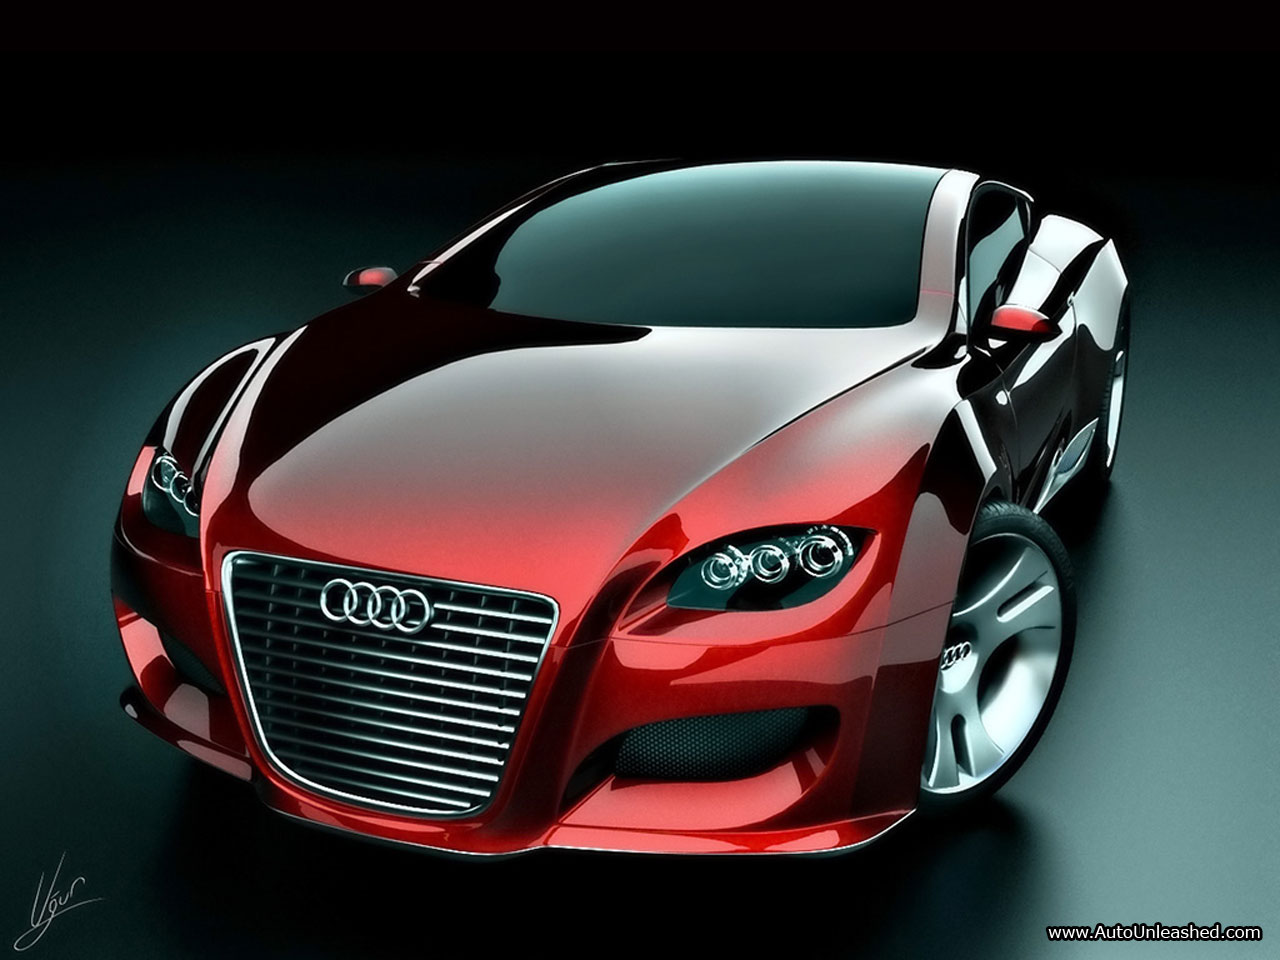 Wallpapers: Latest Cars And Bikes